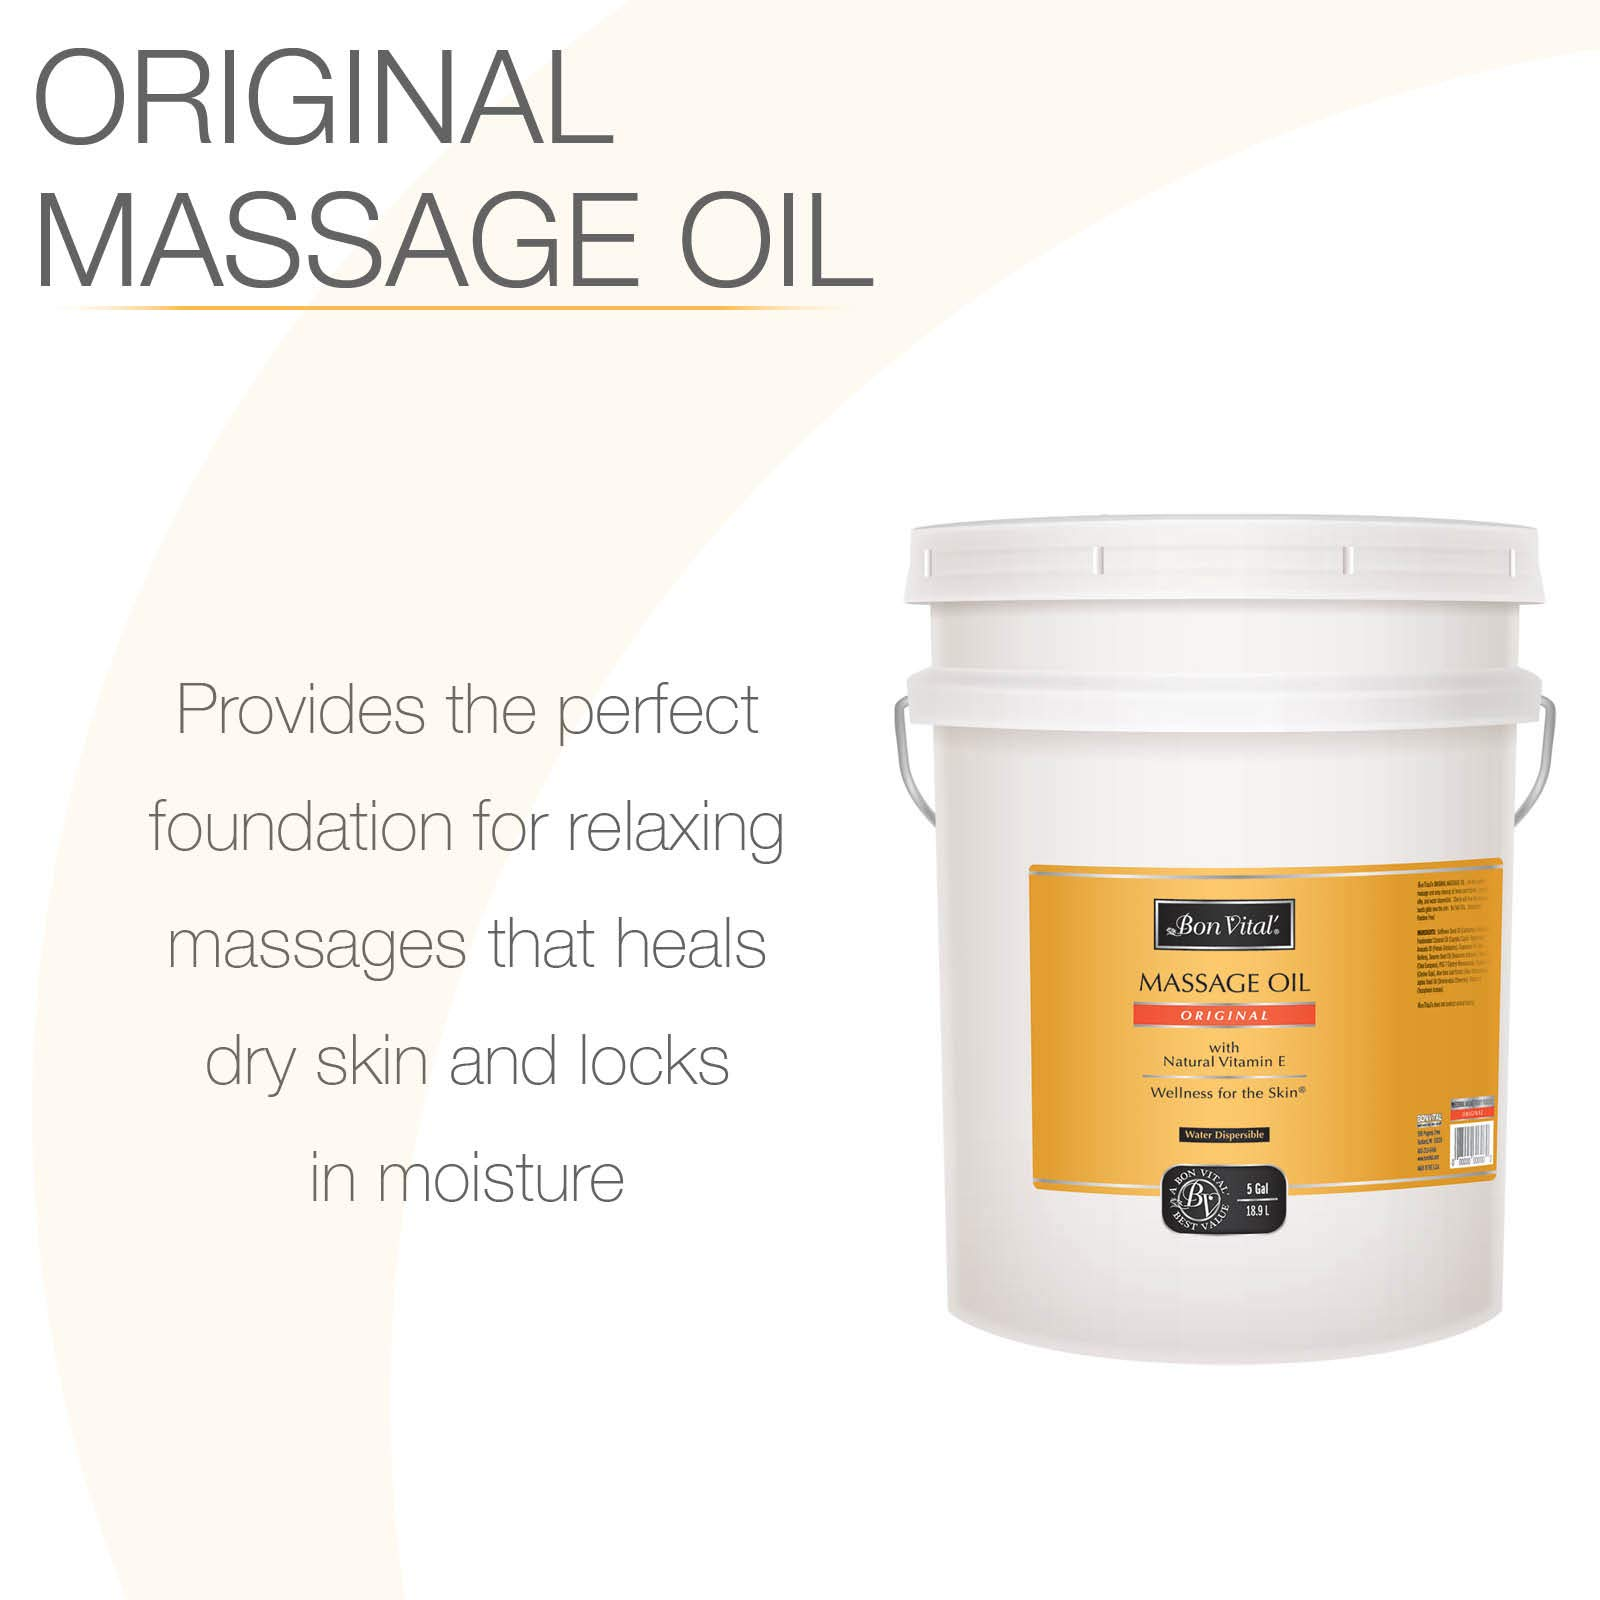 Bon Vital' Original Massage Oil for a Versatile Massage Foundation to Relax Sore Muscles and Repair Dry Skin, Most Requested, Best Massage Oil on Market, Unbeatable Consistency and Quality, 5 Gal Pail by Bon Vital (Image #2)